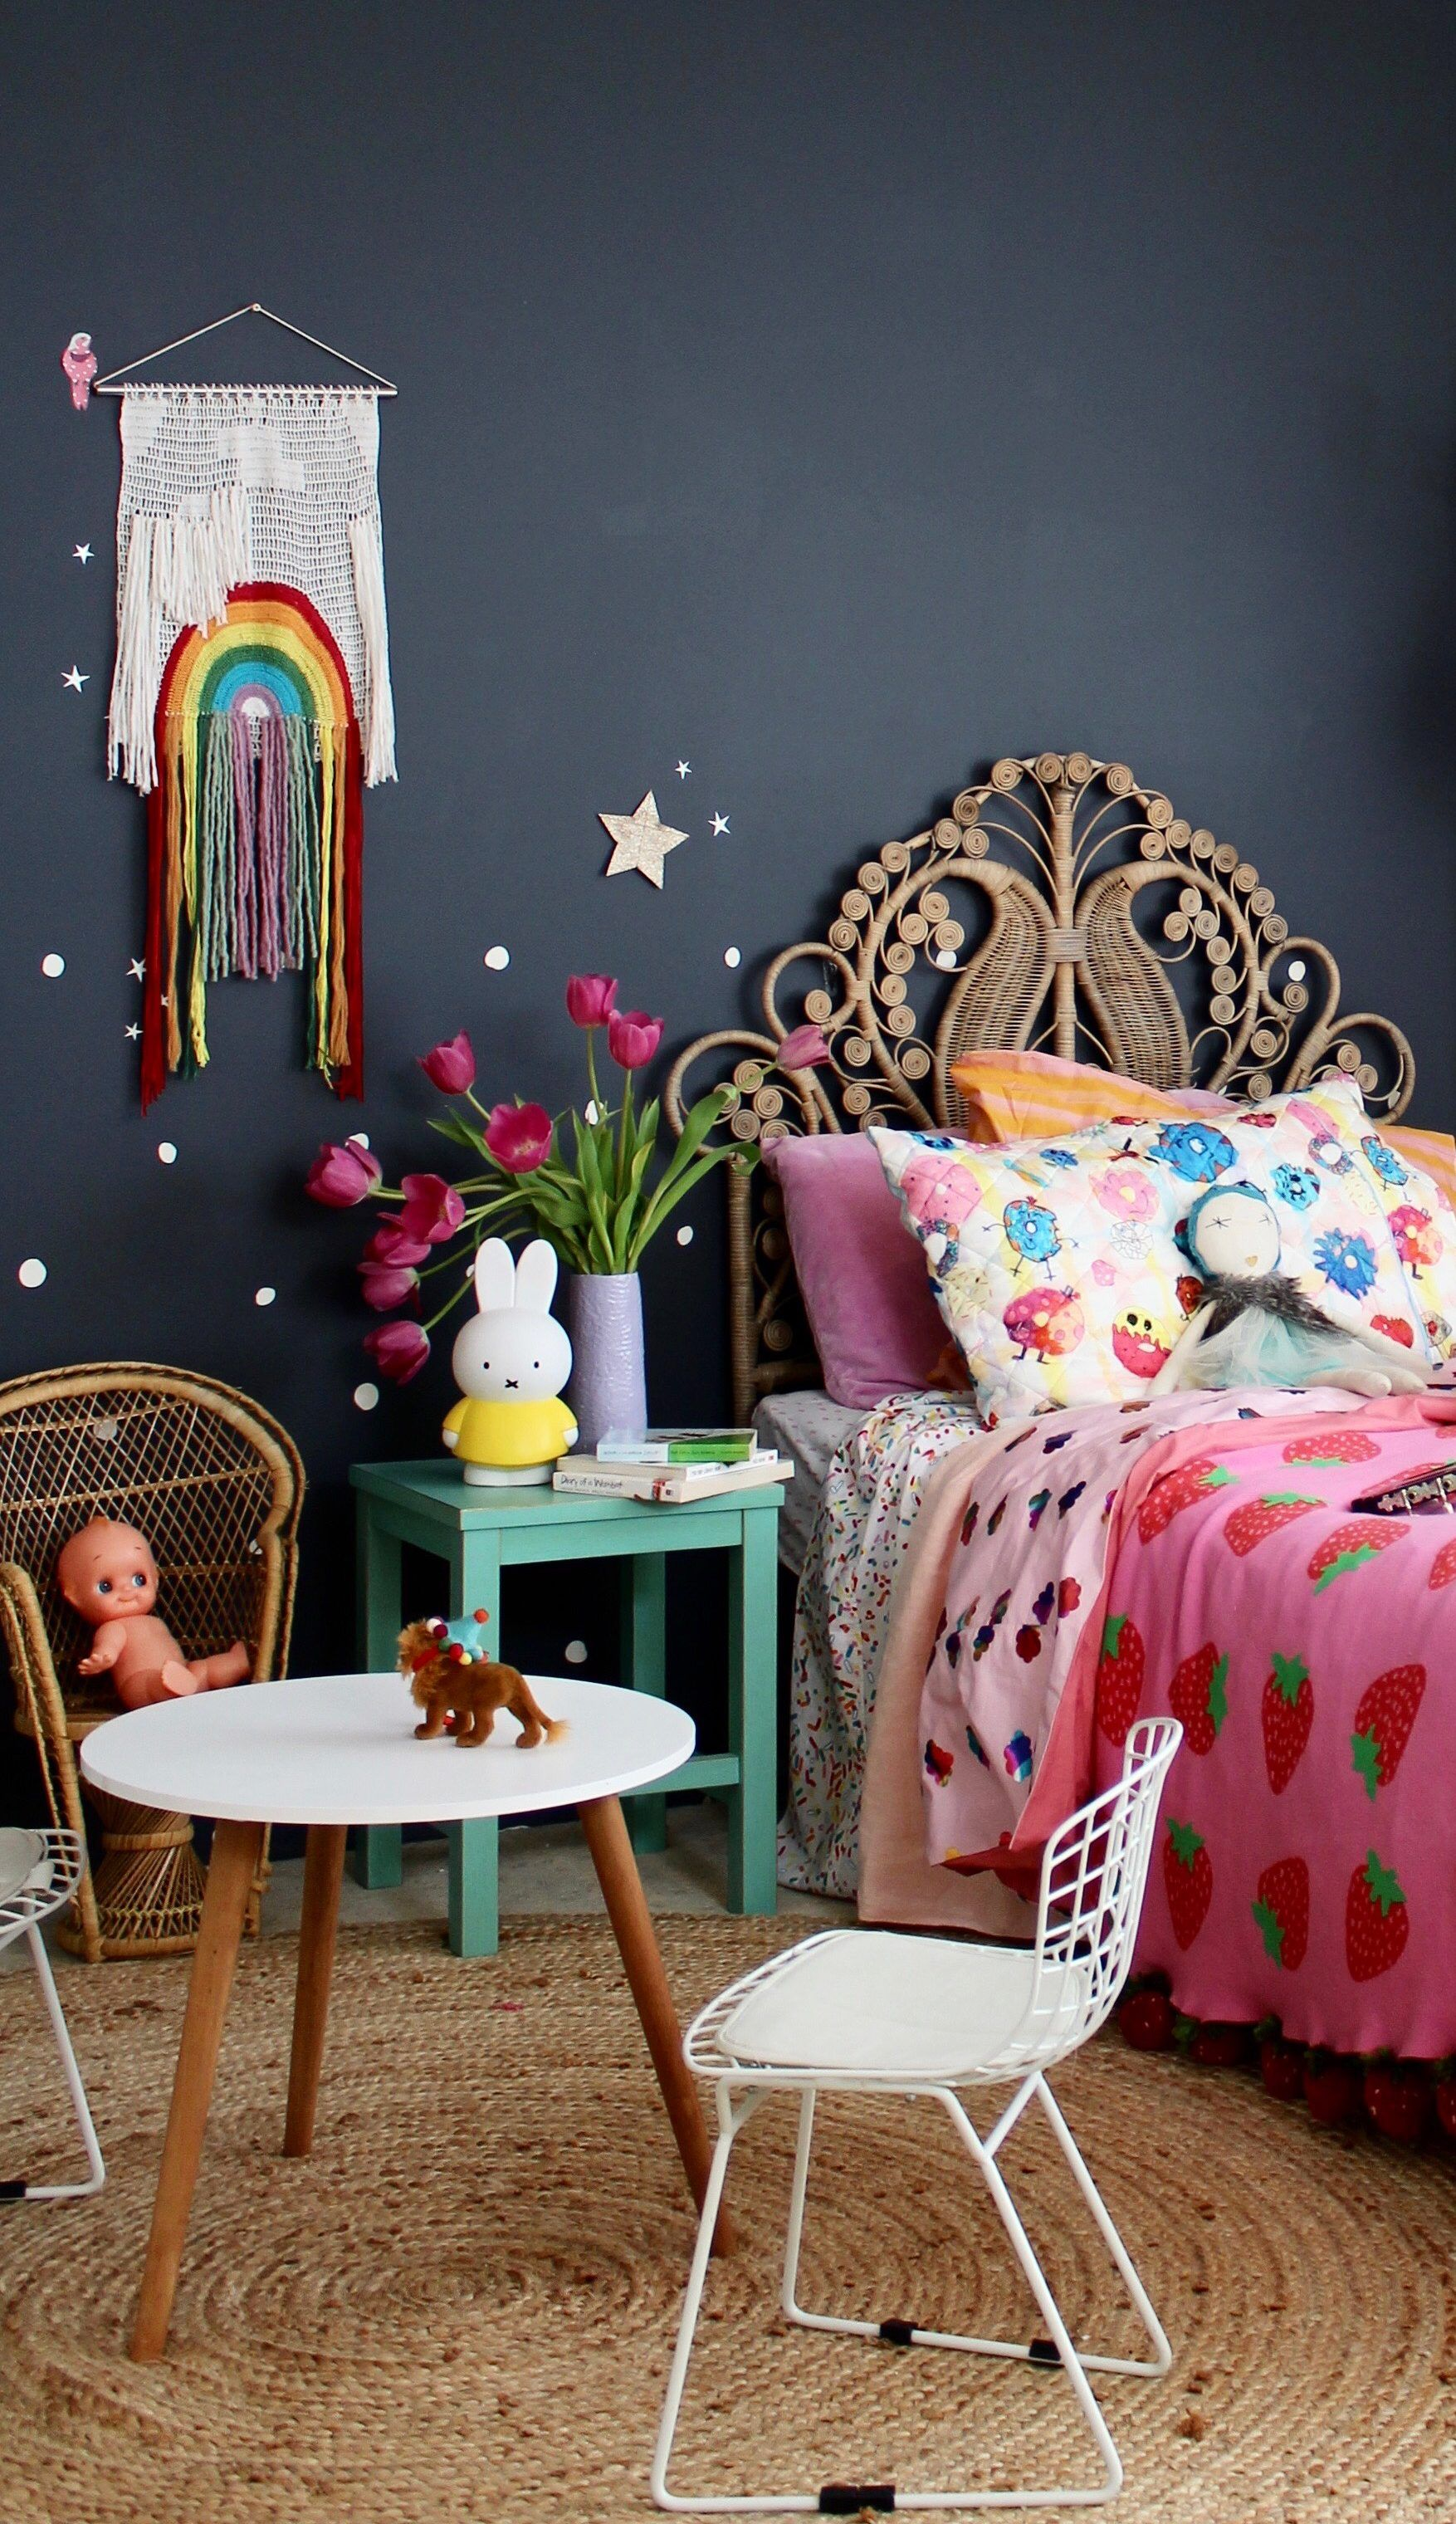 Trending Now Boho Vintage Bedroom For Girls Kids Girl